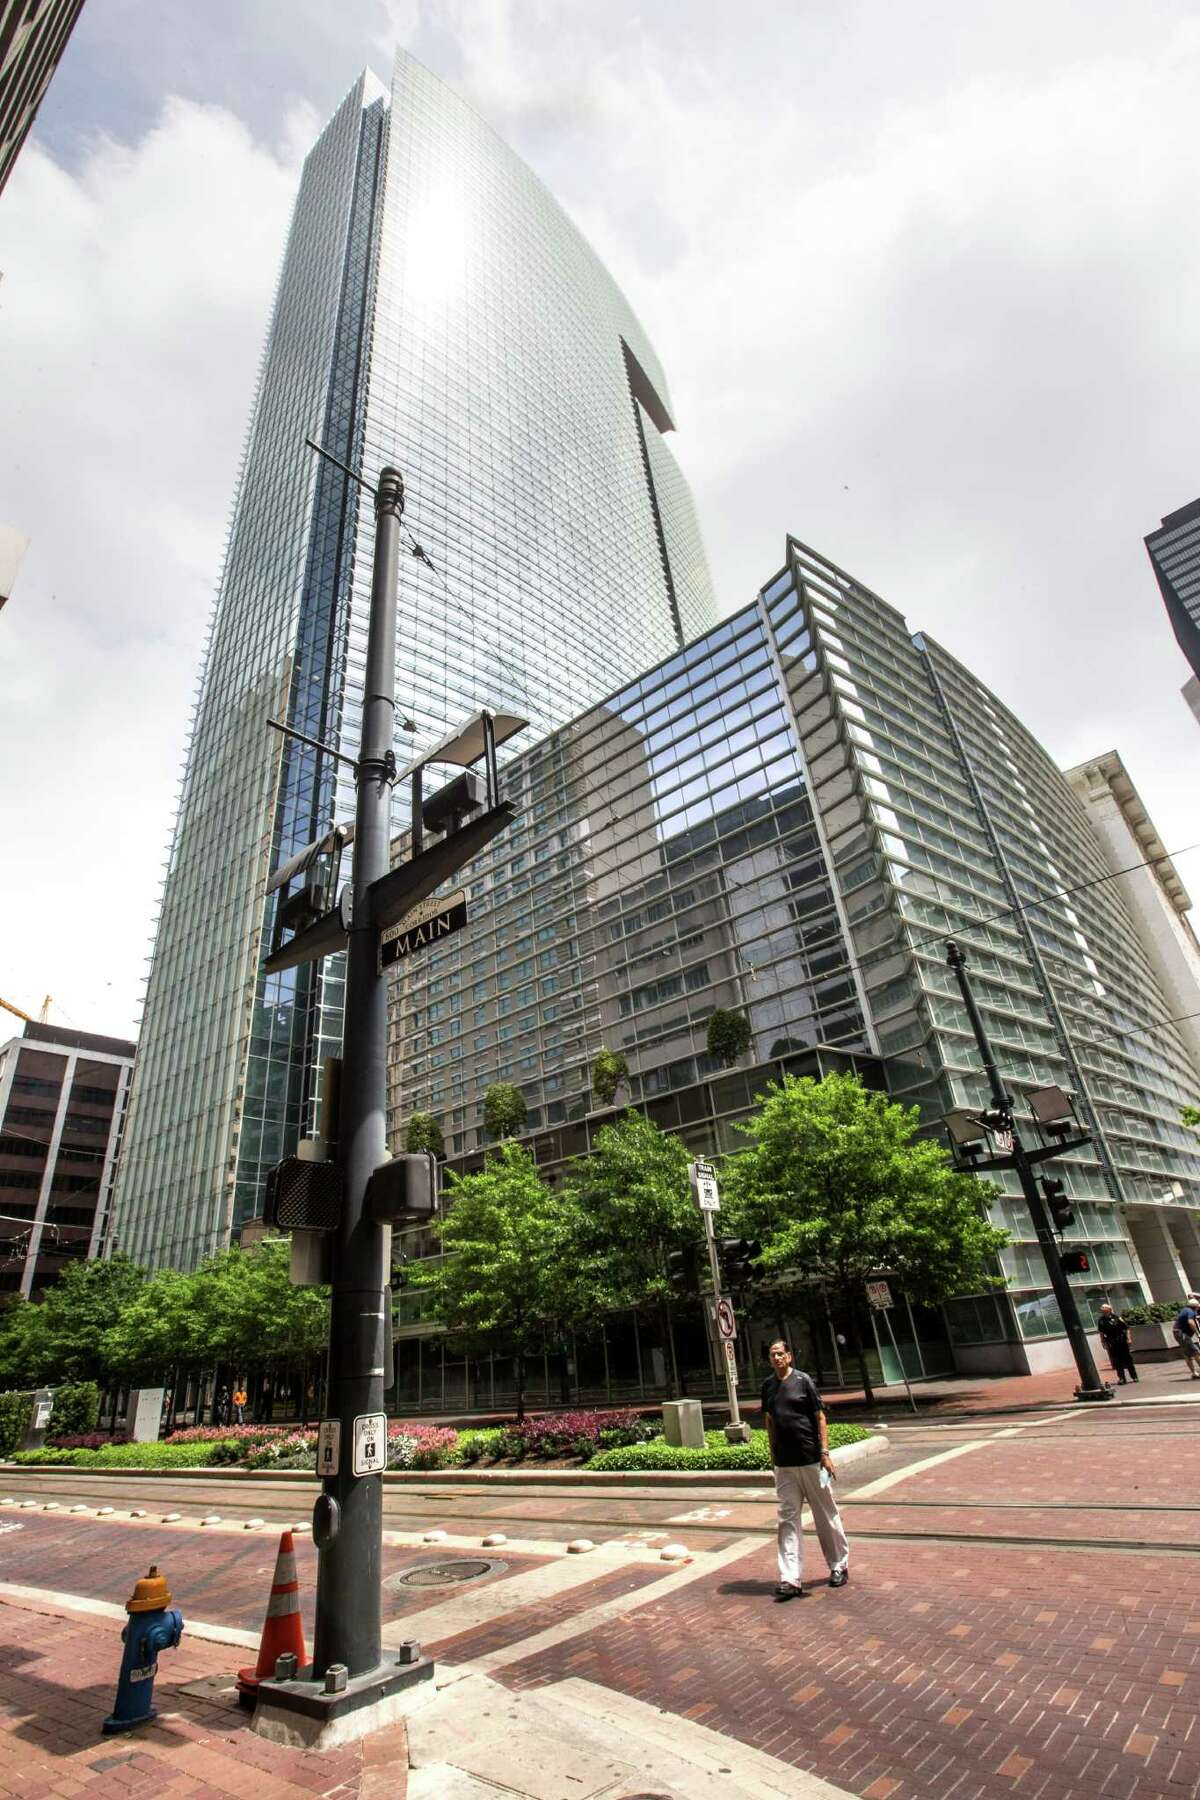 1500 Louisiana: Hines was the development manager for the 40-story office tower in downtown Houston now occupied by Chevron Corp. The building was designed by Cesar Pelli and completed in early 2002. (Jim Olive Photography)